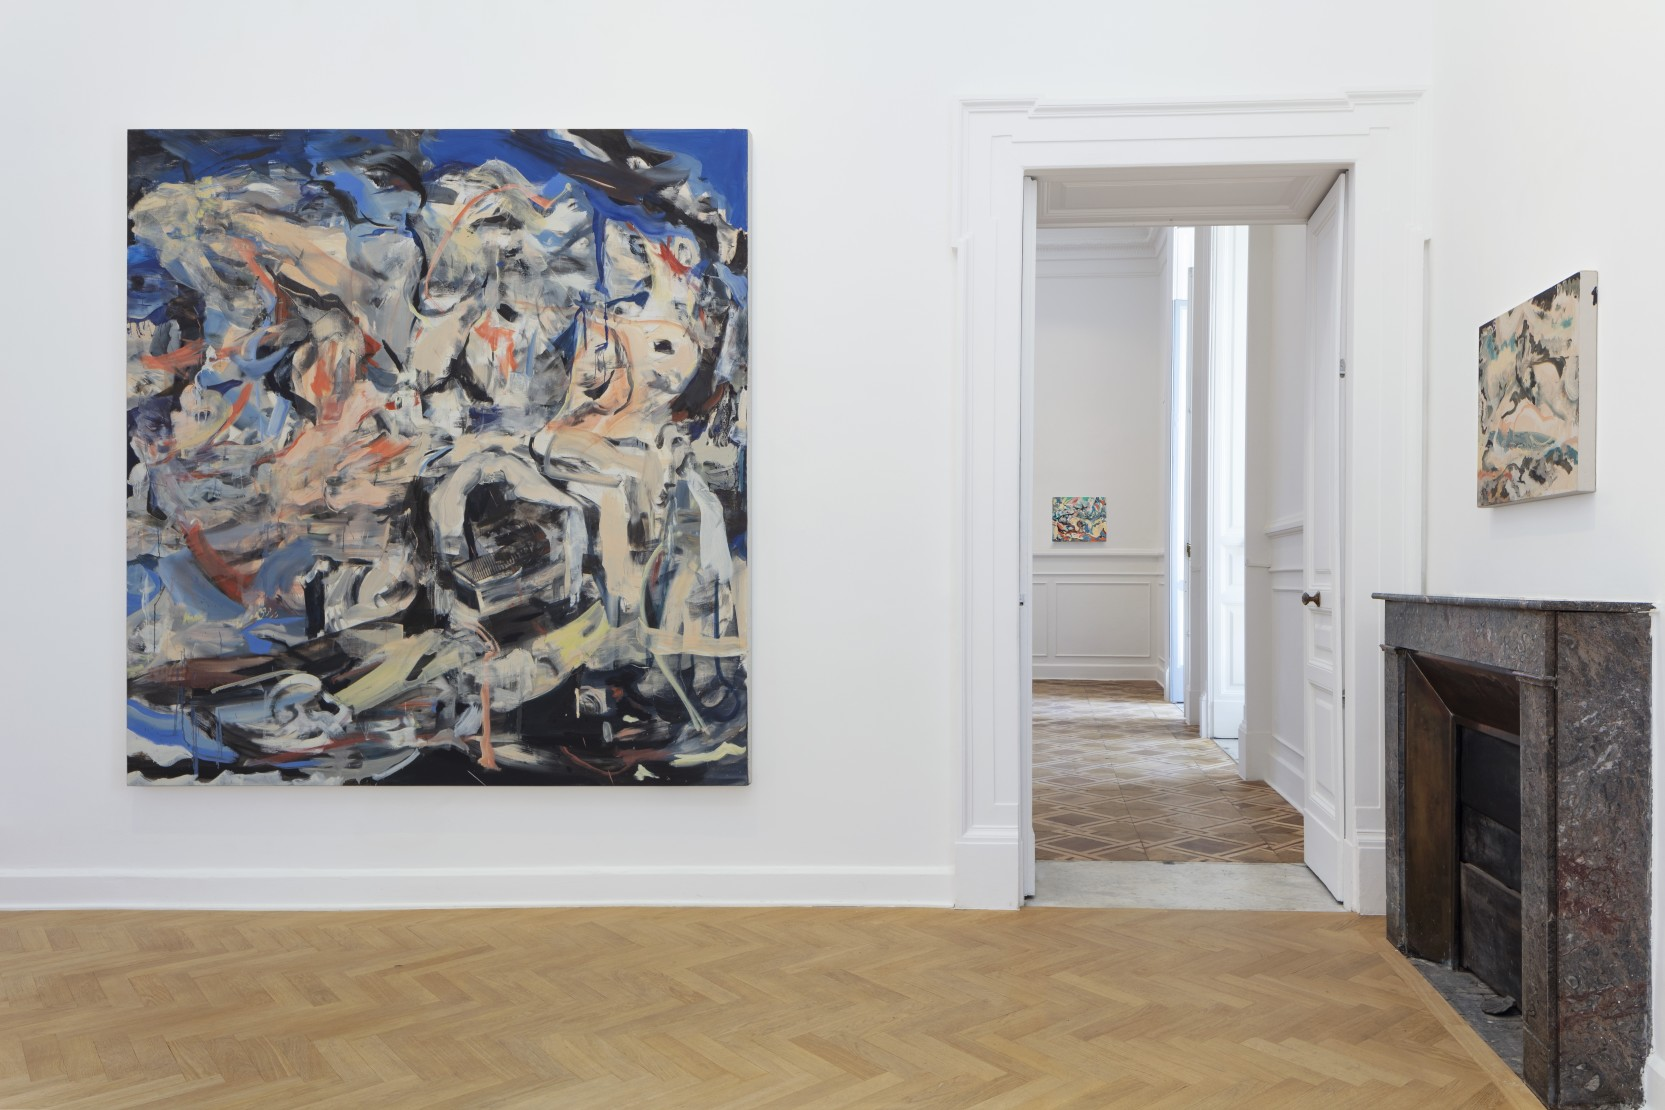 Cecily Brown: We Didn't Mean to Go to Sea